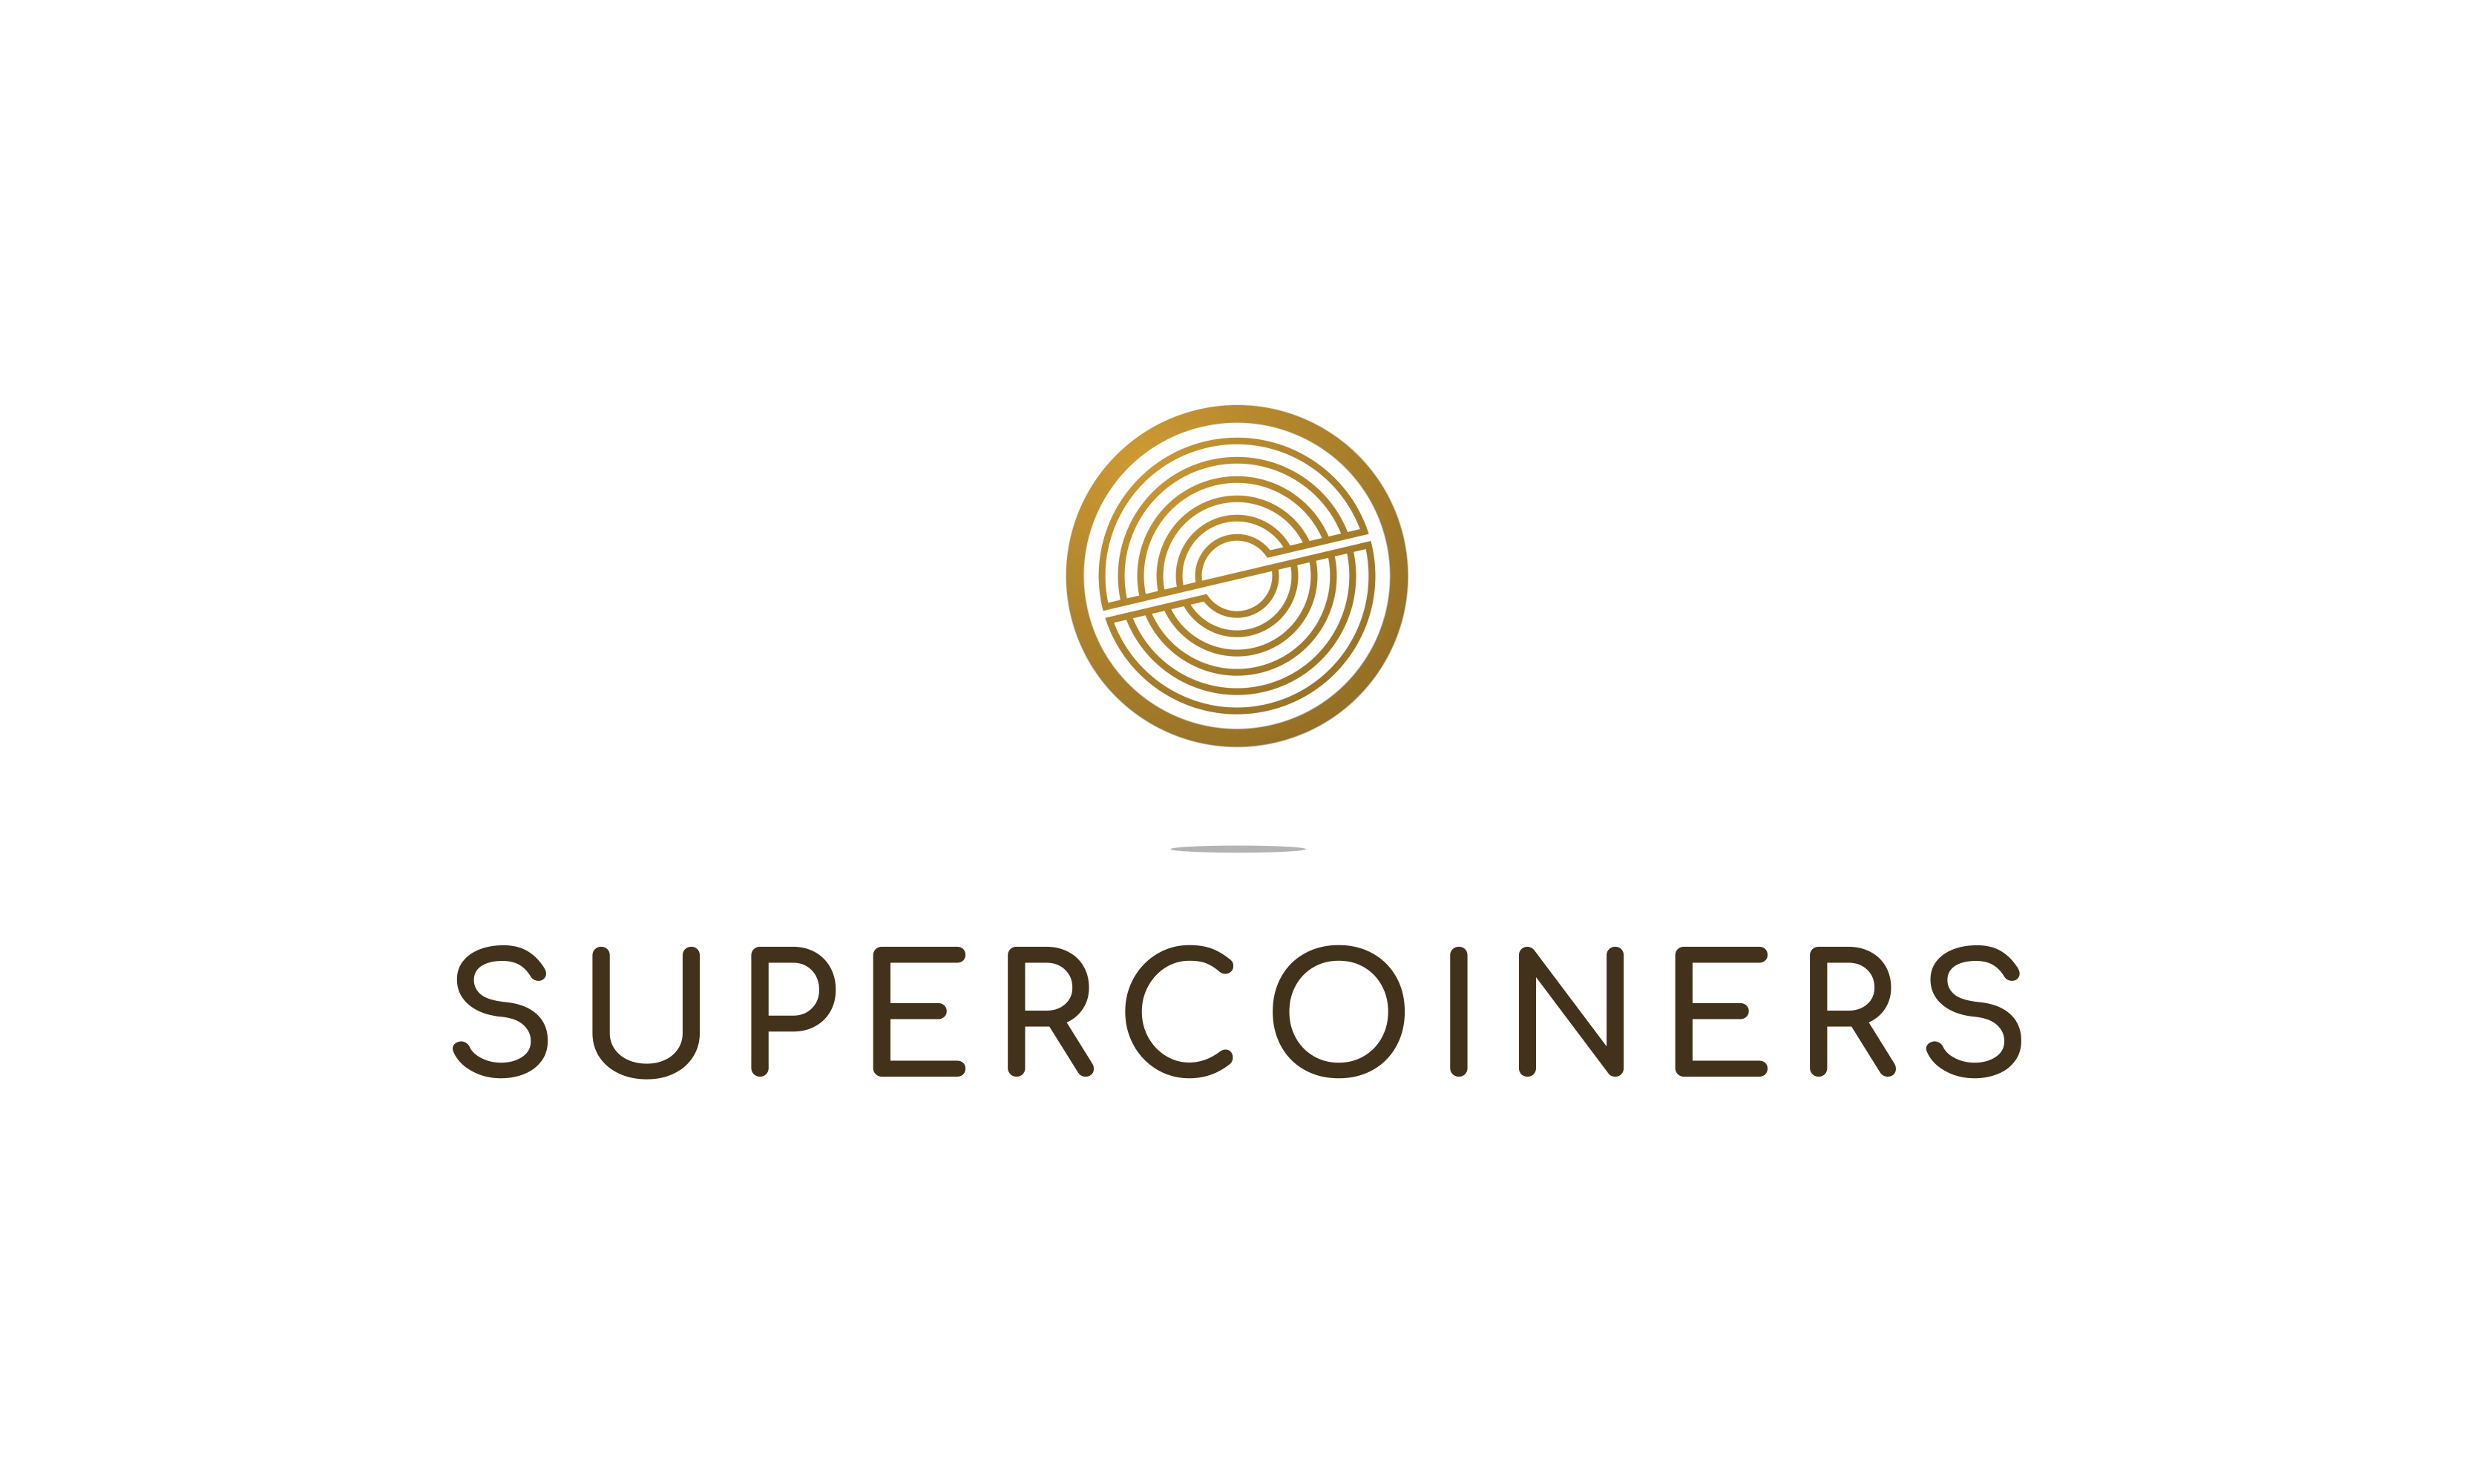 Supercoiners